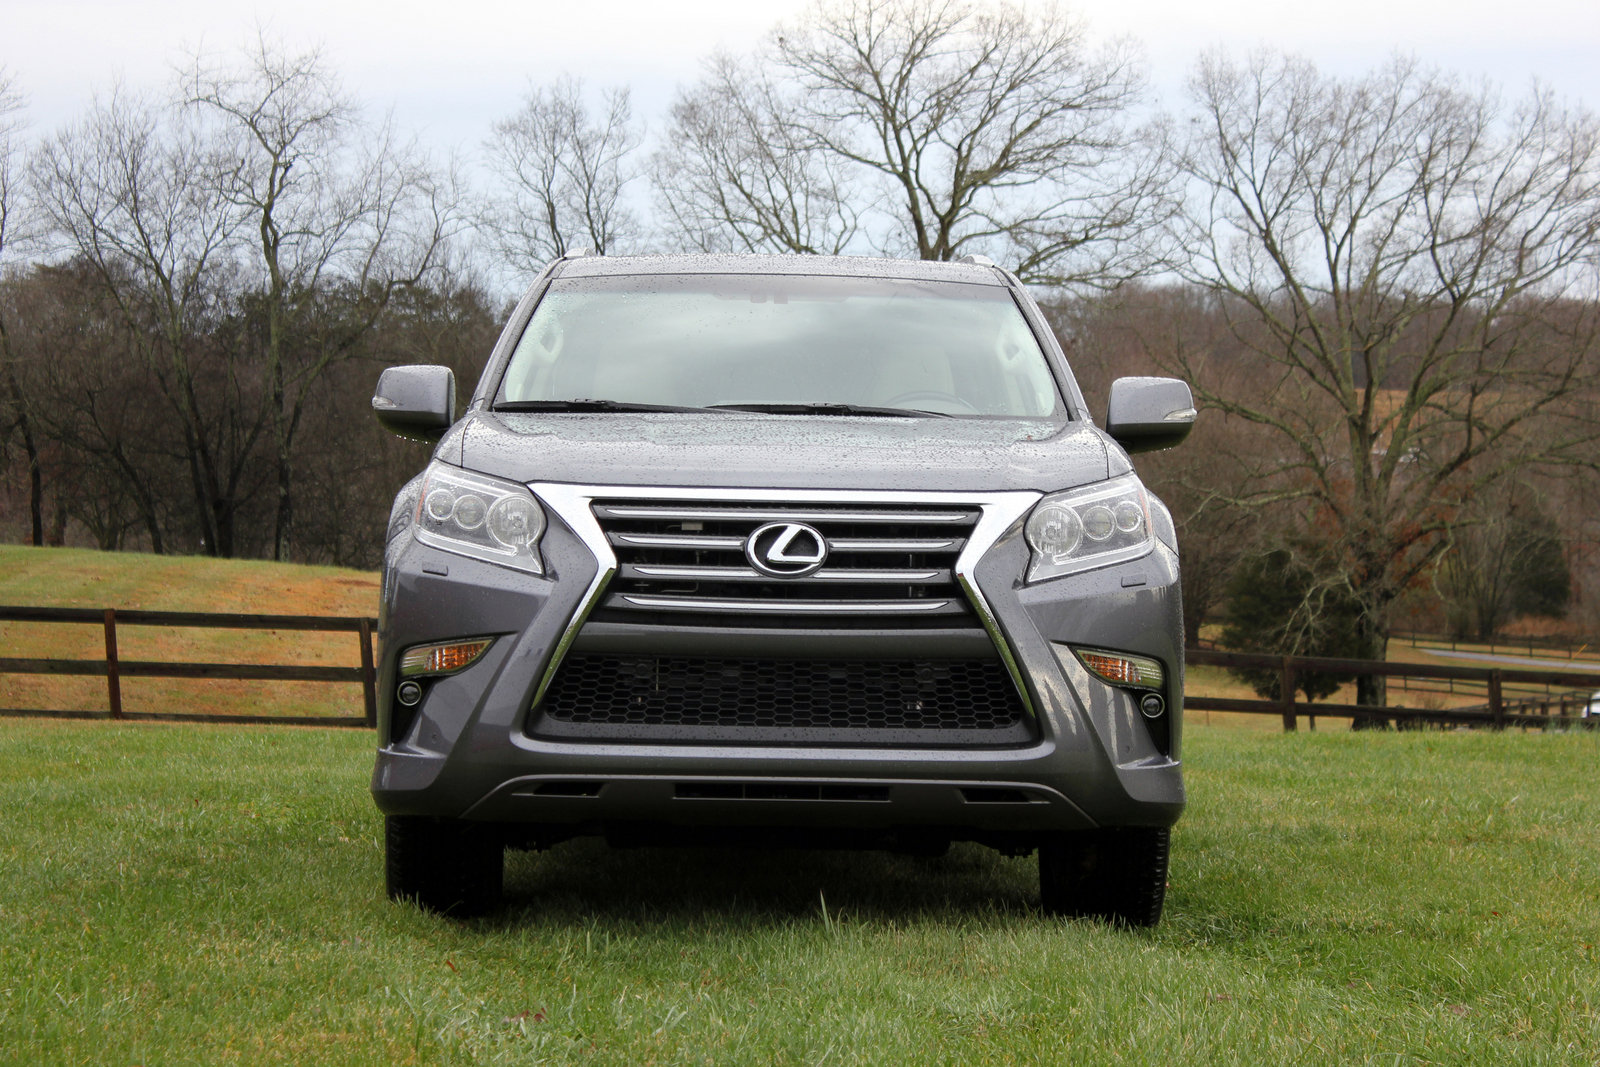 2015 lexus gx 460 driven picture 608269 car review top speed. Black Bedroom Furniture Sets. Home Design Ideas